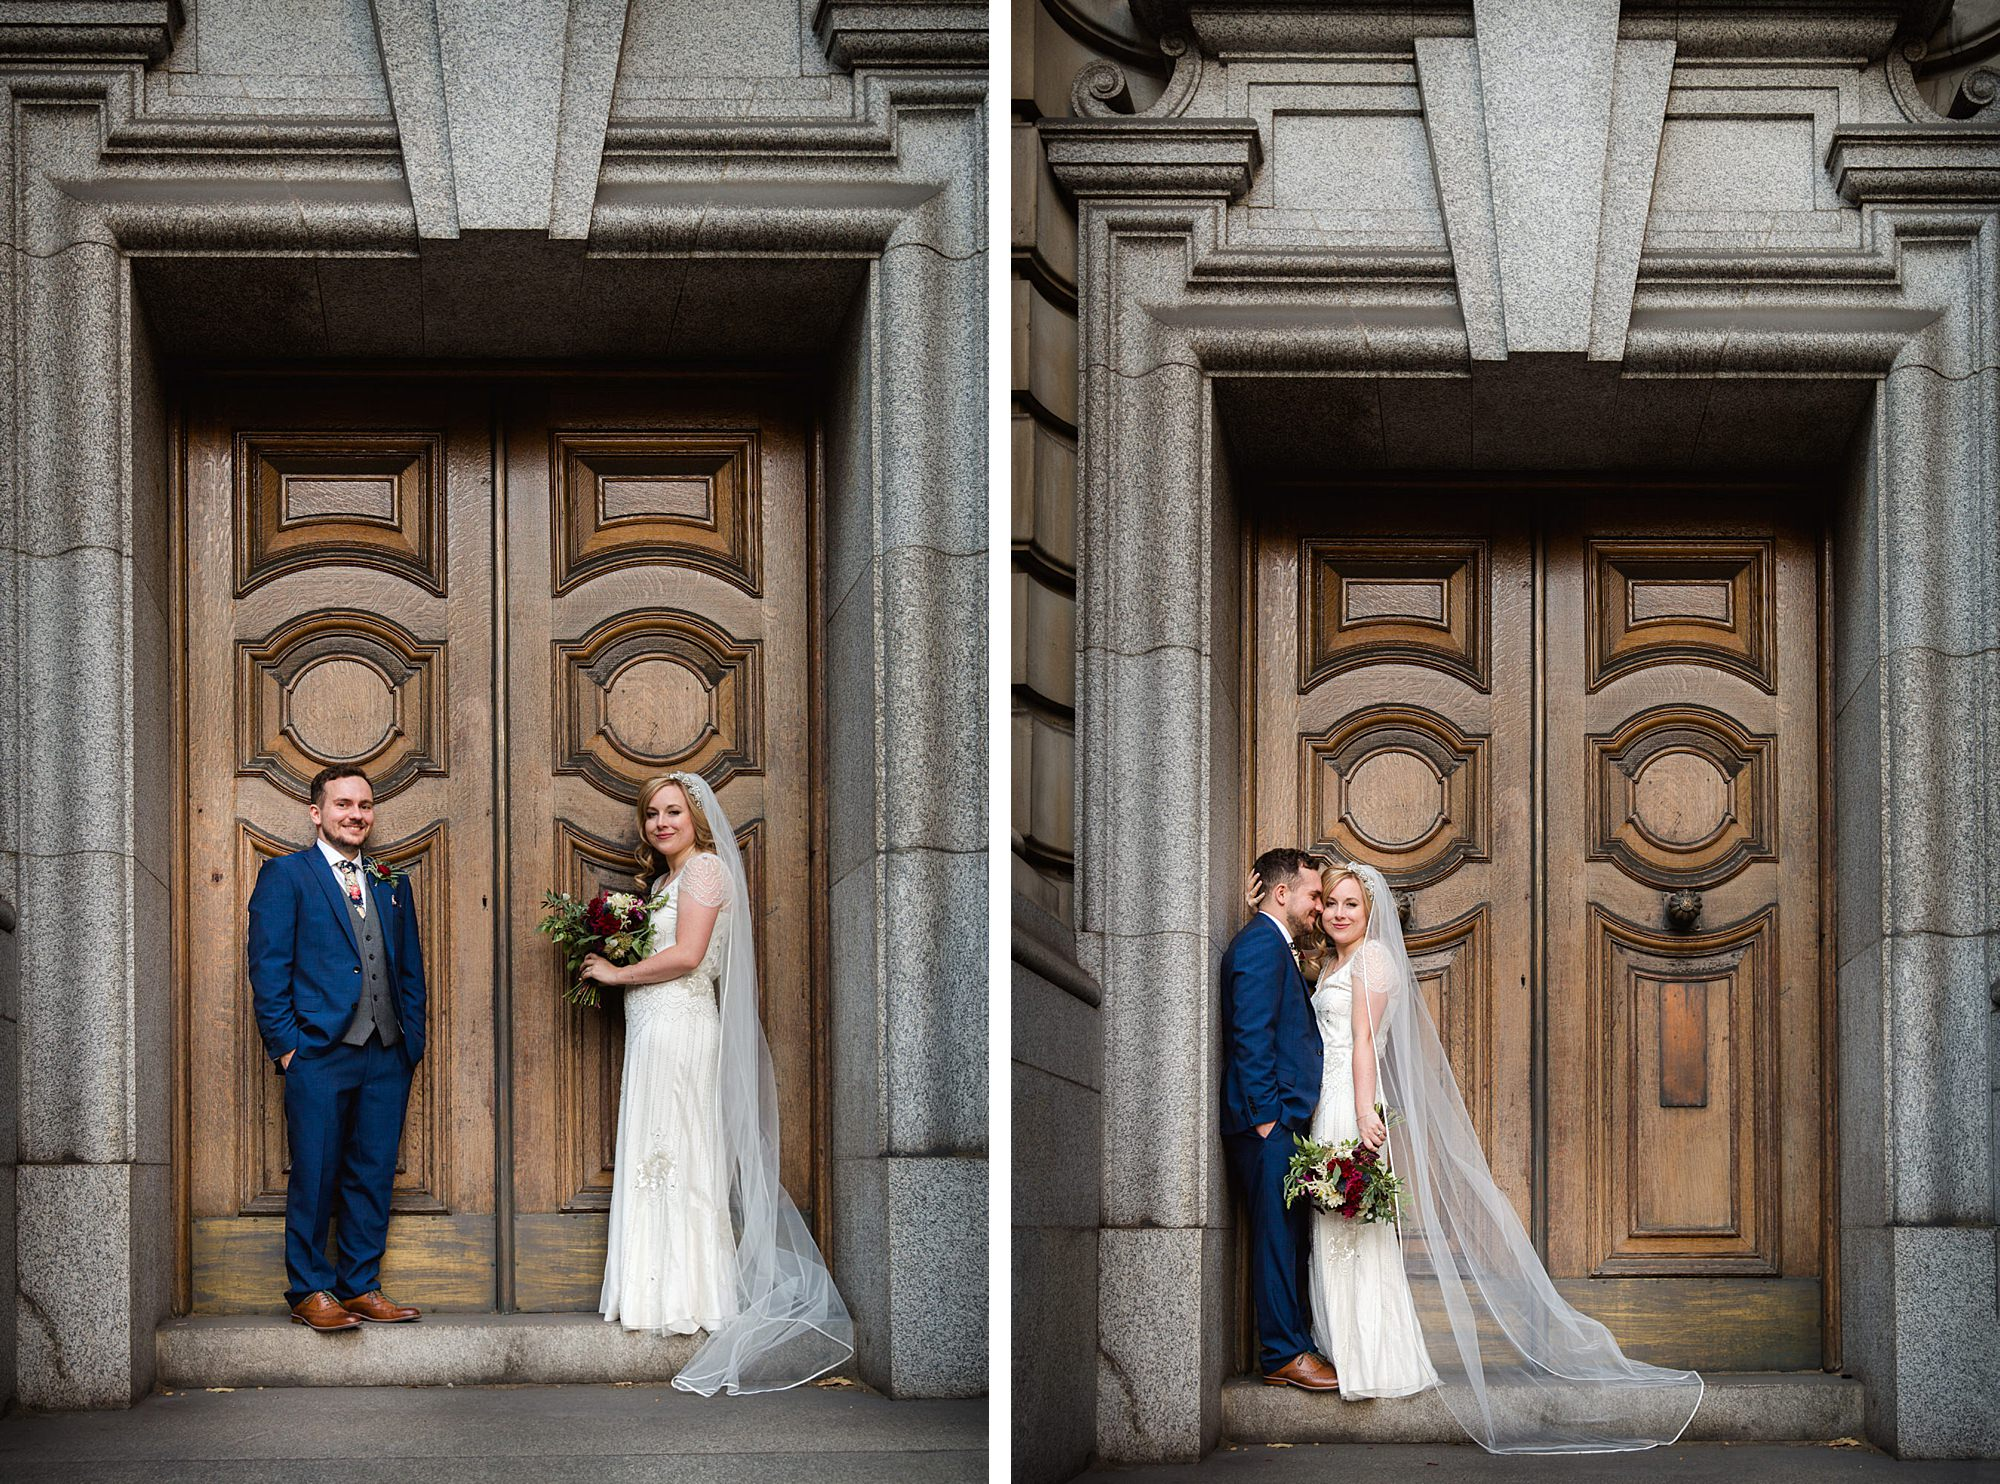 Harrild and sons wedding bride and groom in ornate doorway